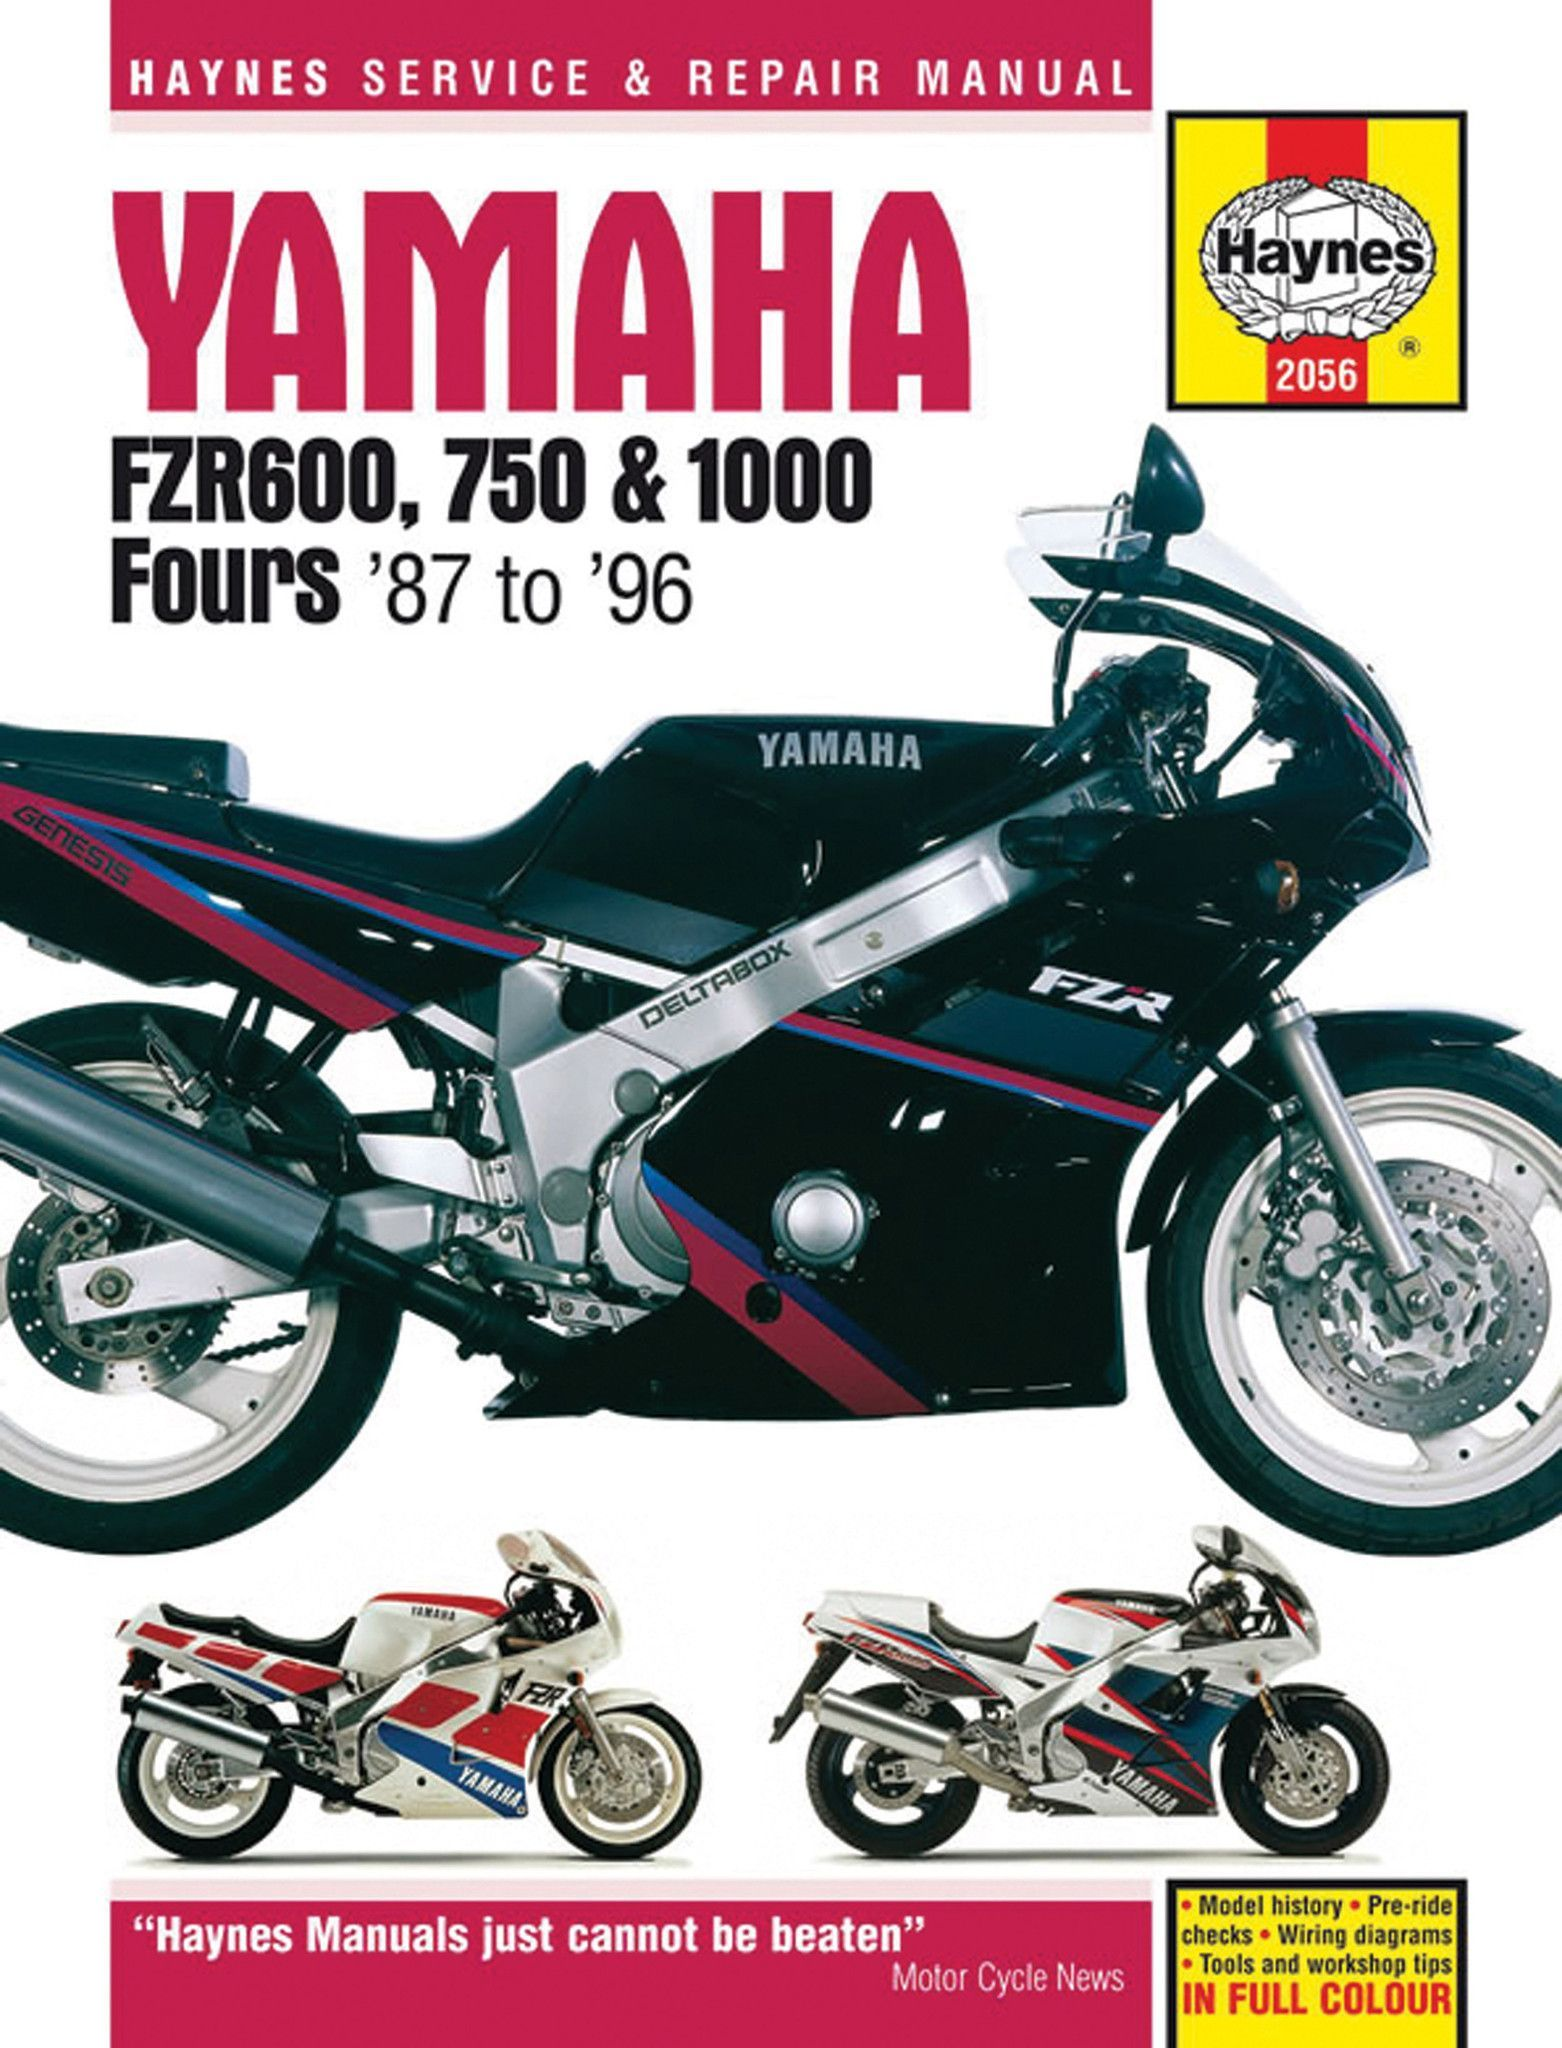 Haynes M2056 Repair Manual for Yamaha FZR600 / FZR750 / FZR1000 Yamaha Fzr  600, Repair